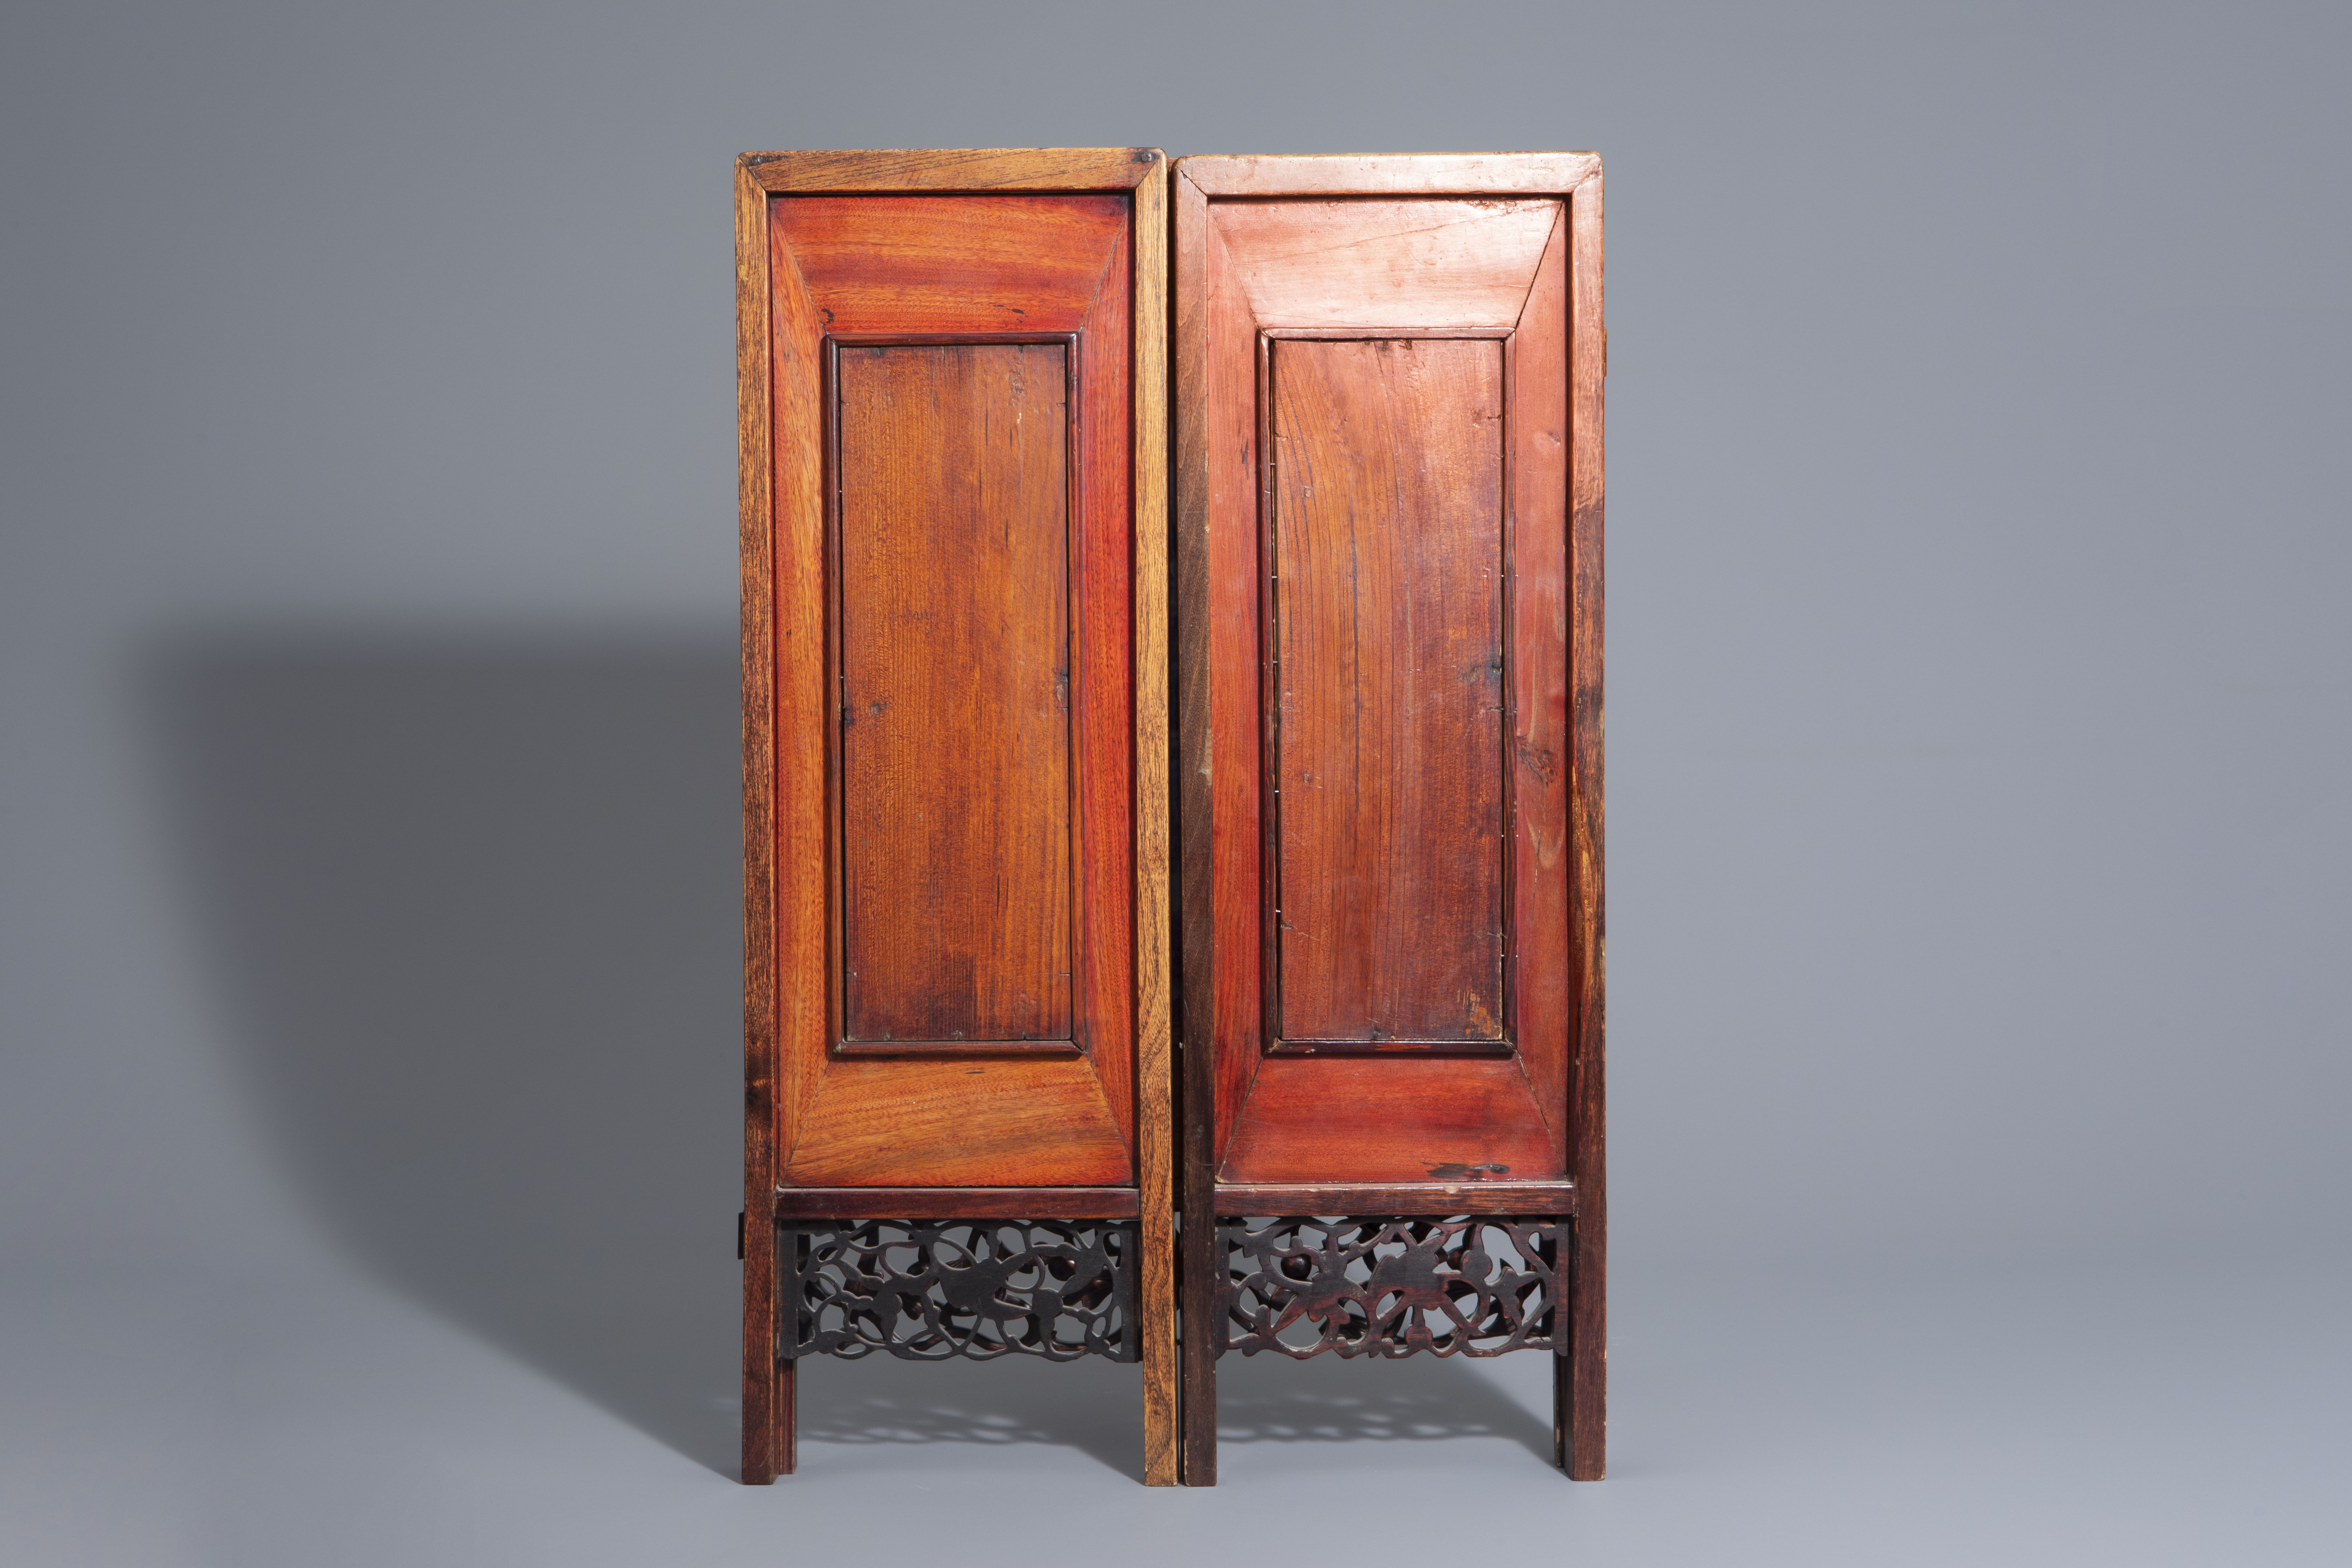 A Chinese threefold wooden screen with blue and white plaques, 19th/20th C. - Image 6 of 8